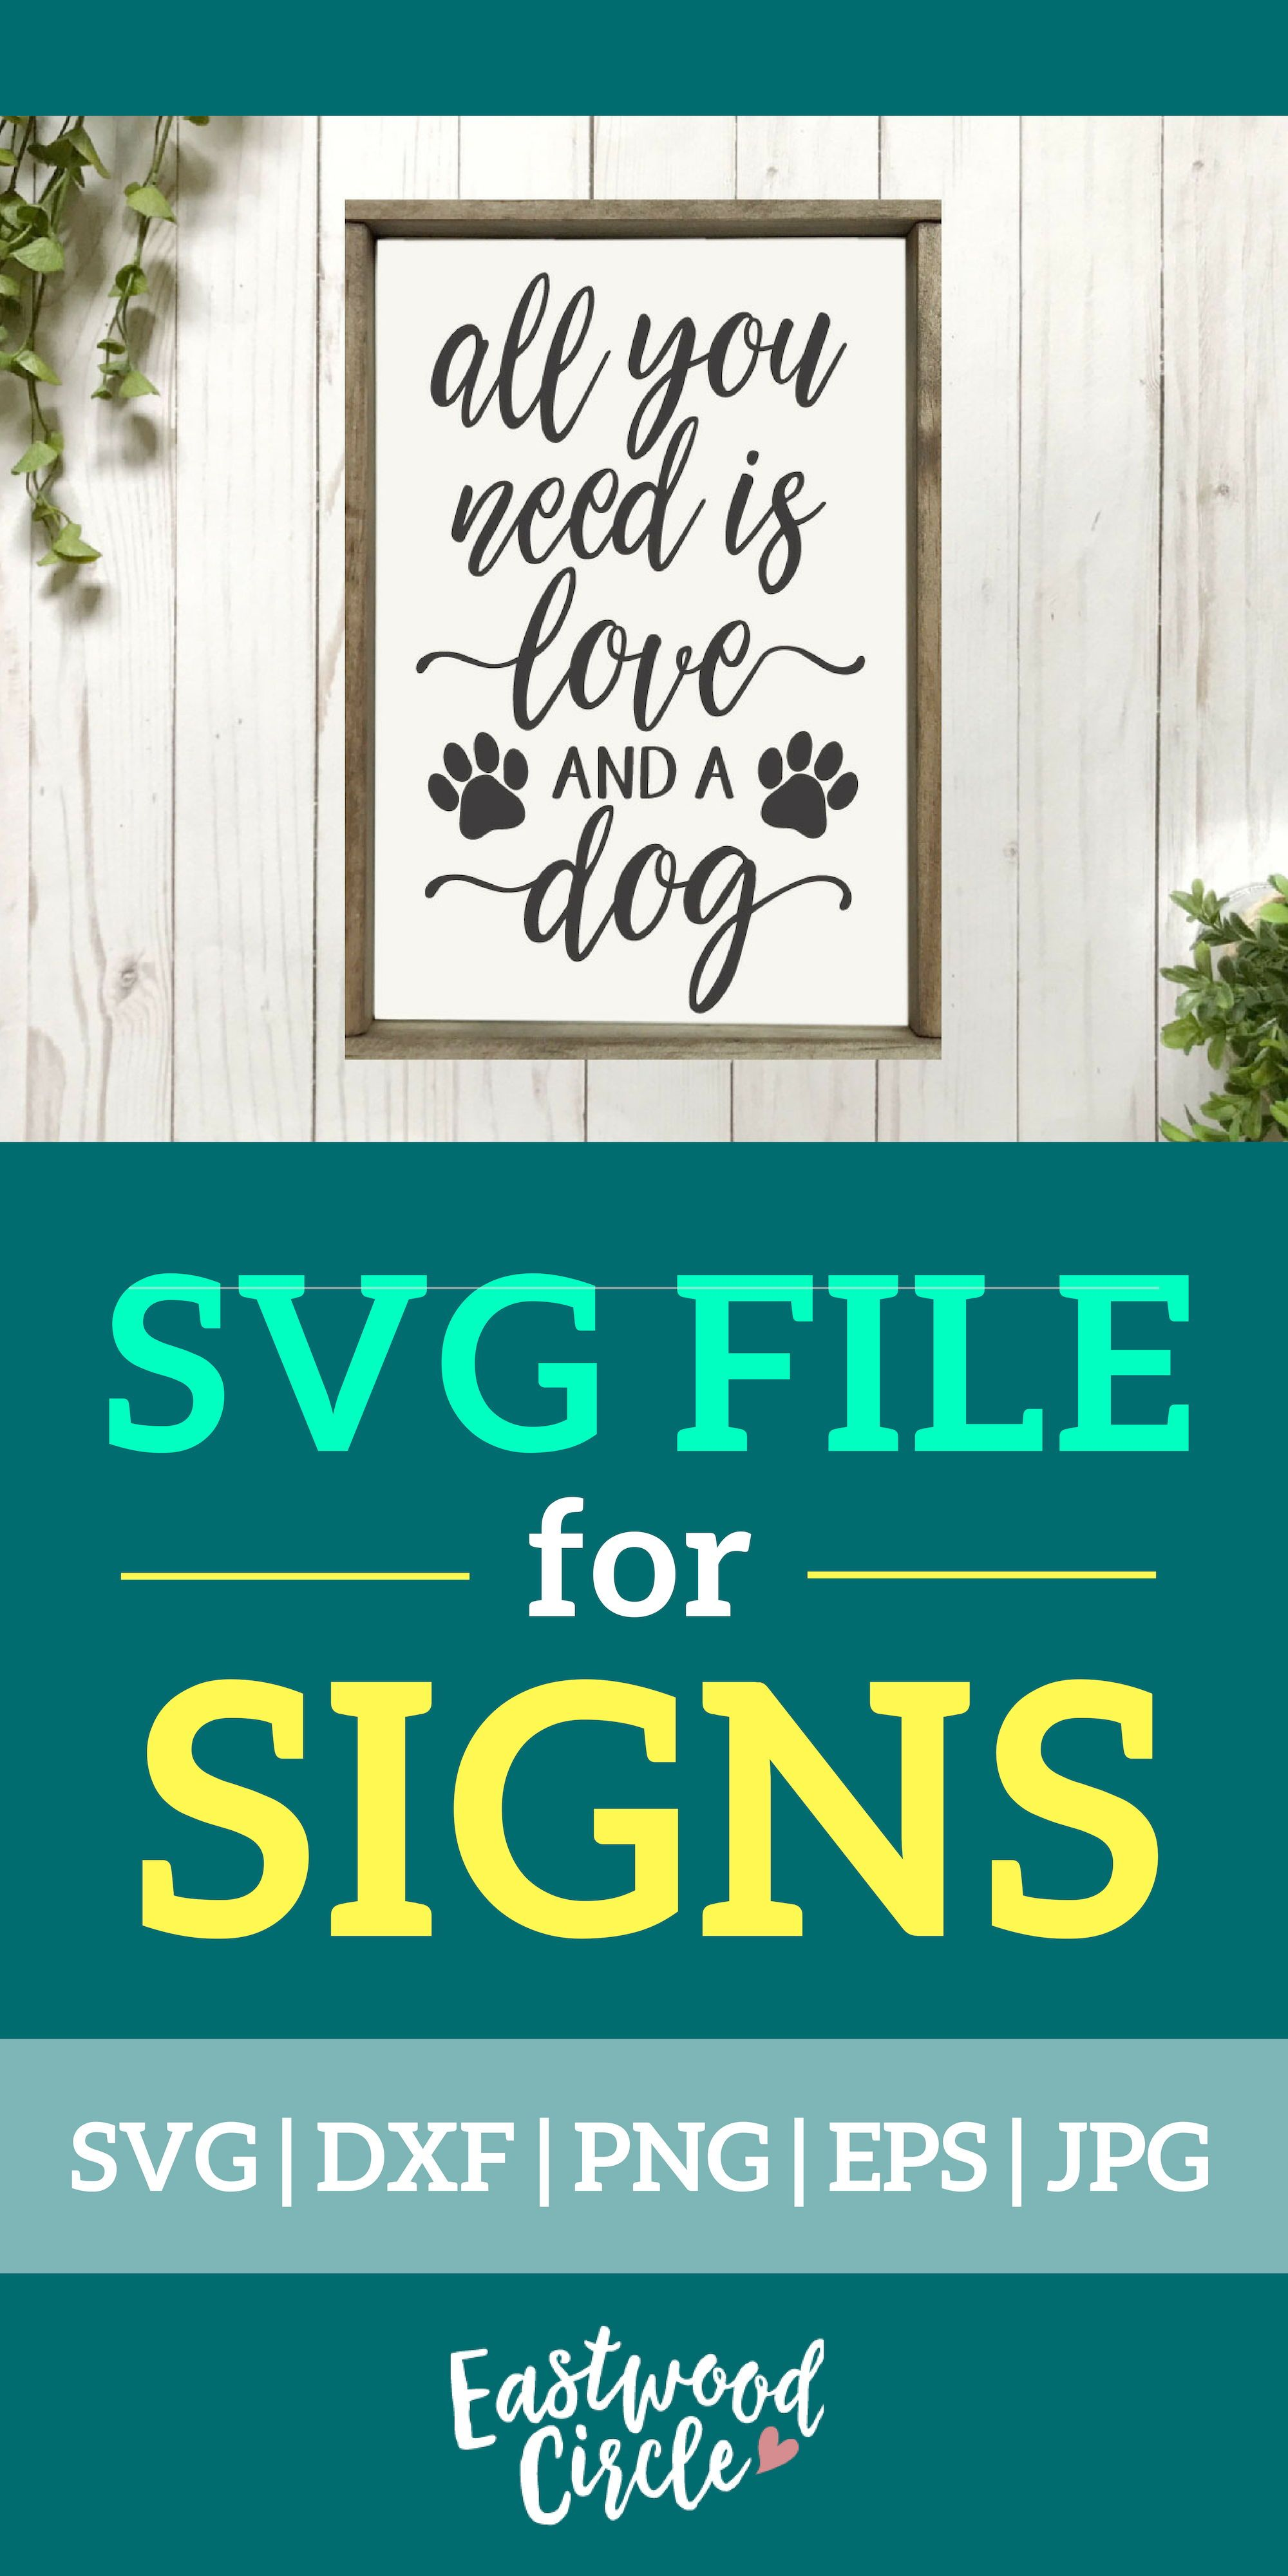 All You Need Is Love And A Dog Svg Dog Svg Dog Sign Svg Dog Svg Files Dog Lover Svg Dog Svg Files For Cricut Dxf Png Commercial Use Svg Files